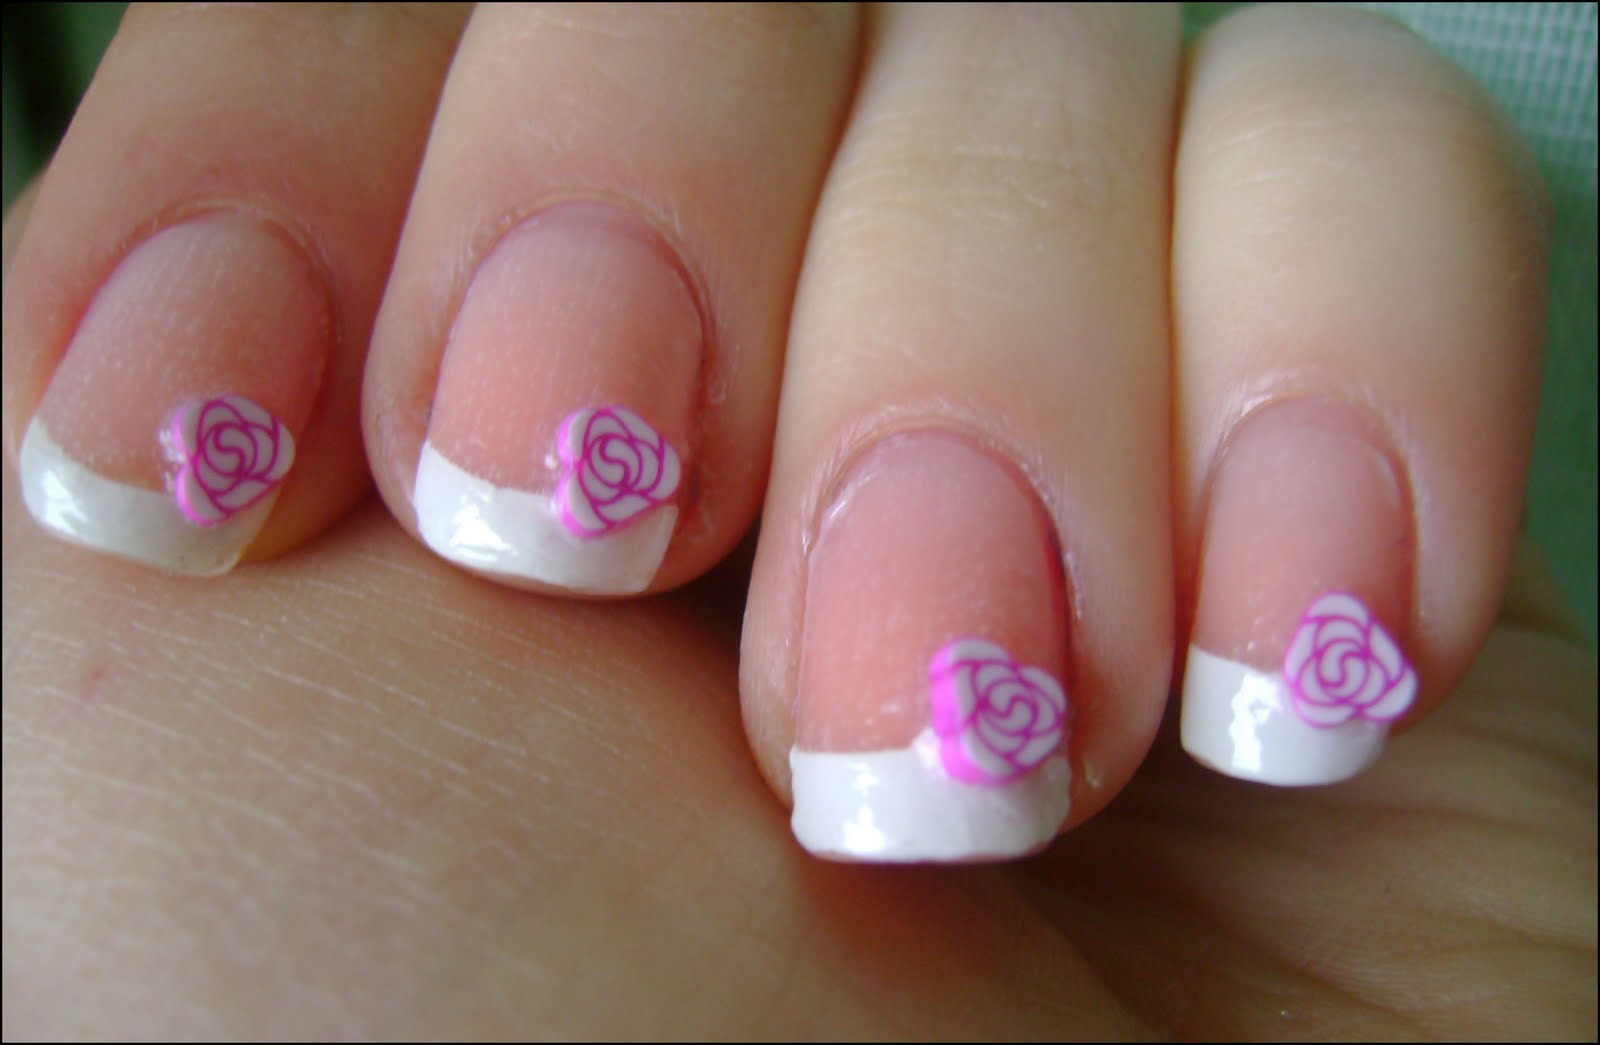 acrylic nail art designs: Incoco french manicure with nail ...